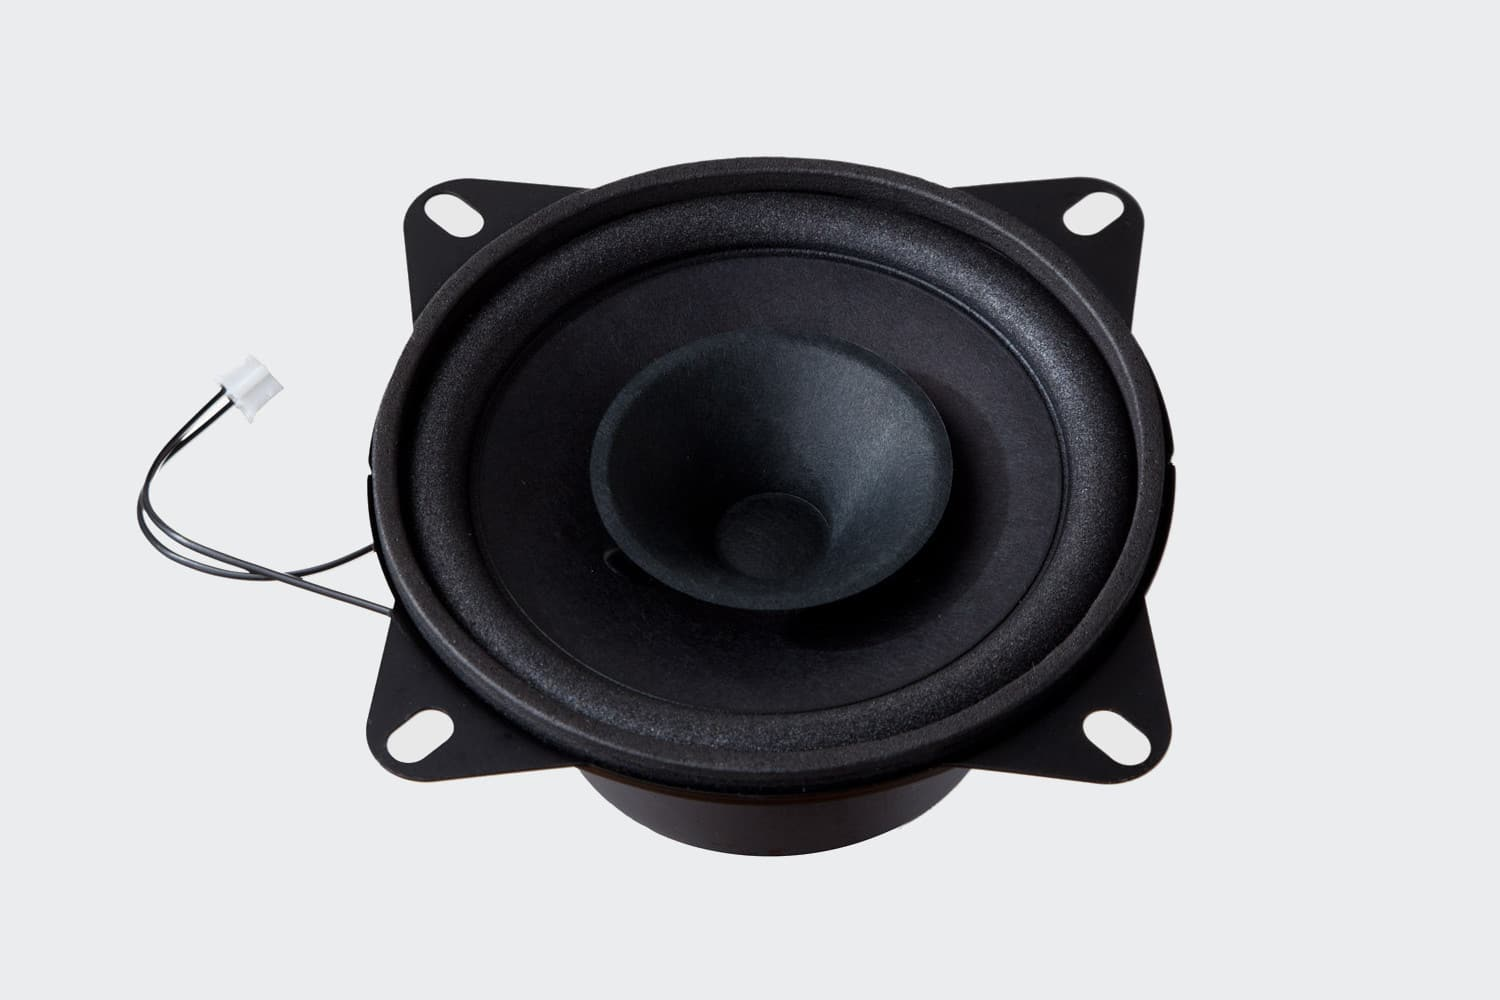 VISATON speaker with cable